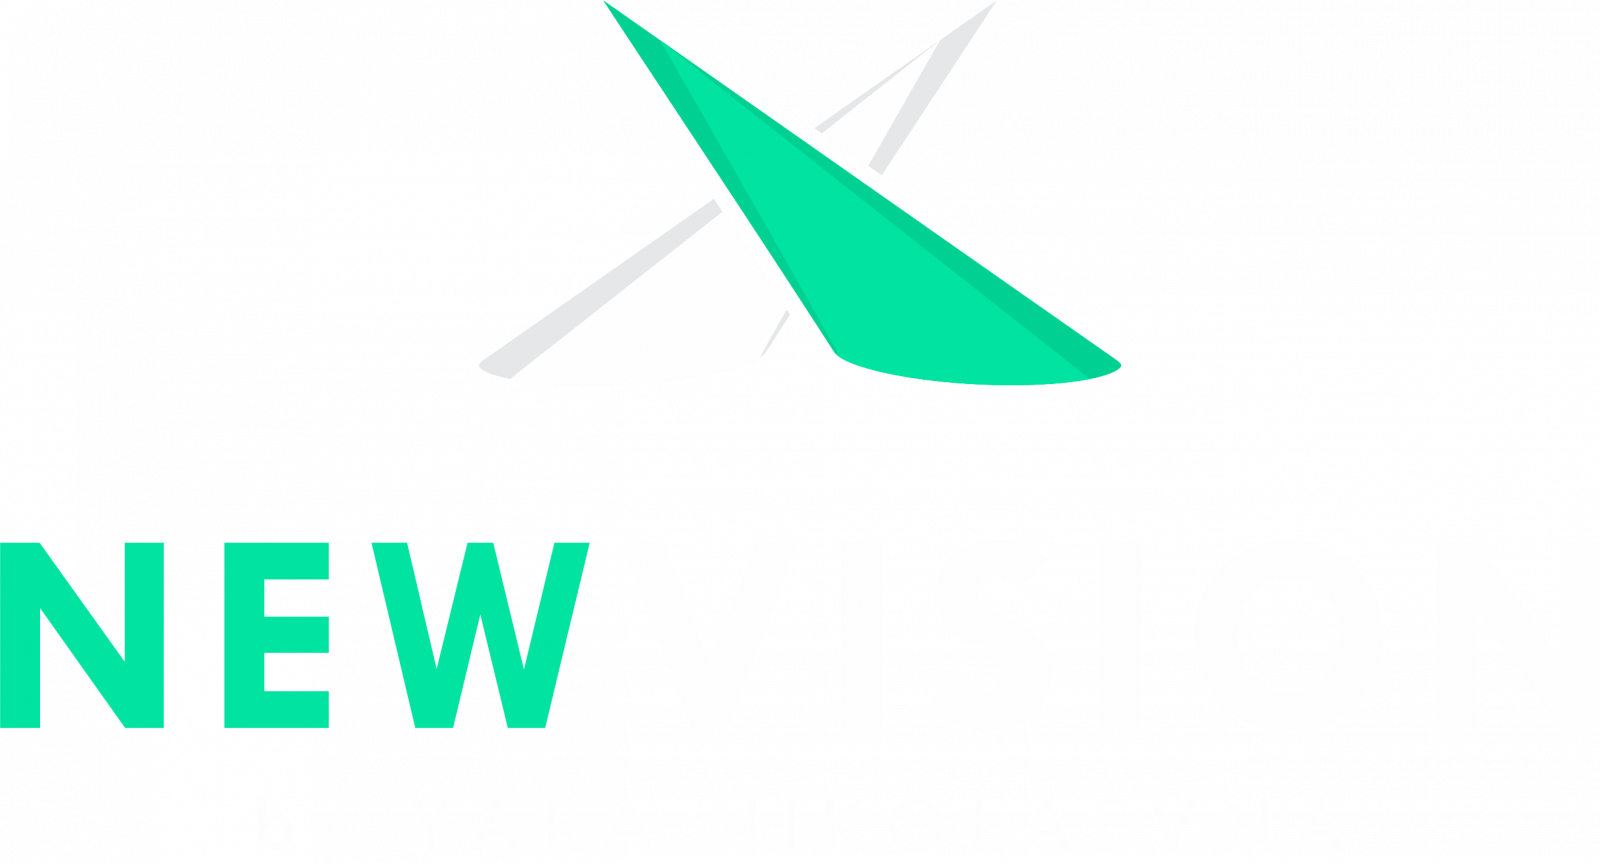 New Vision by Yara Nikolaevna